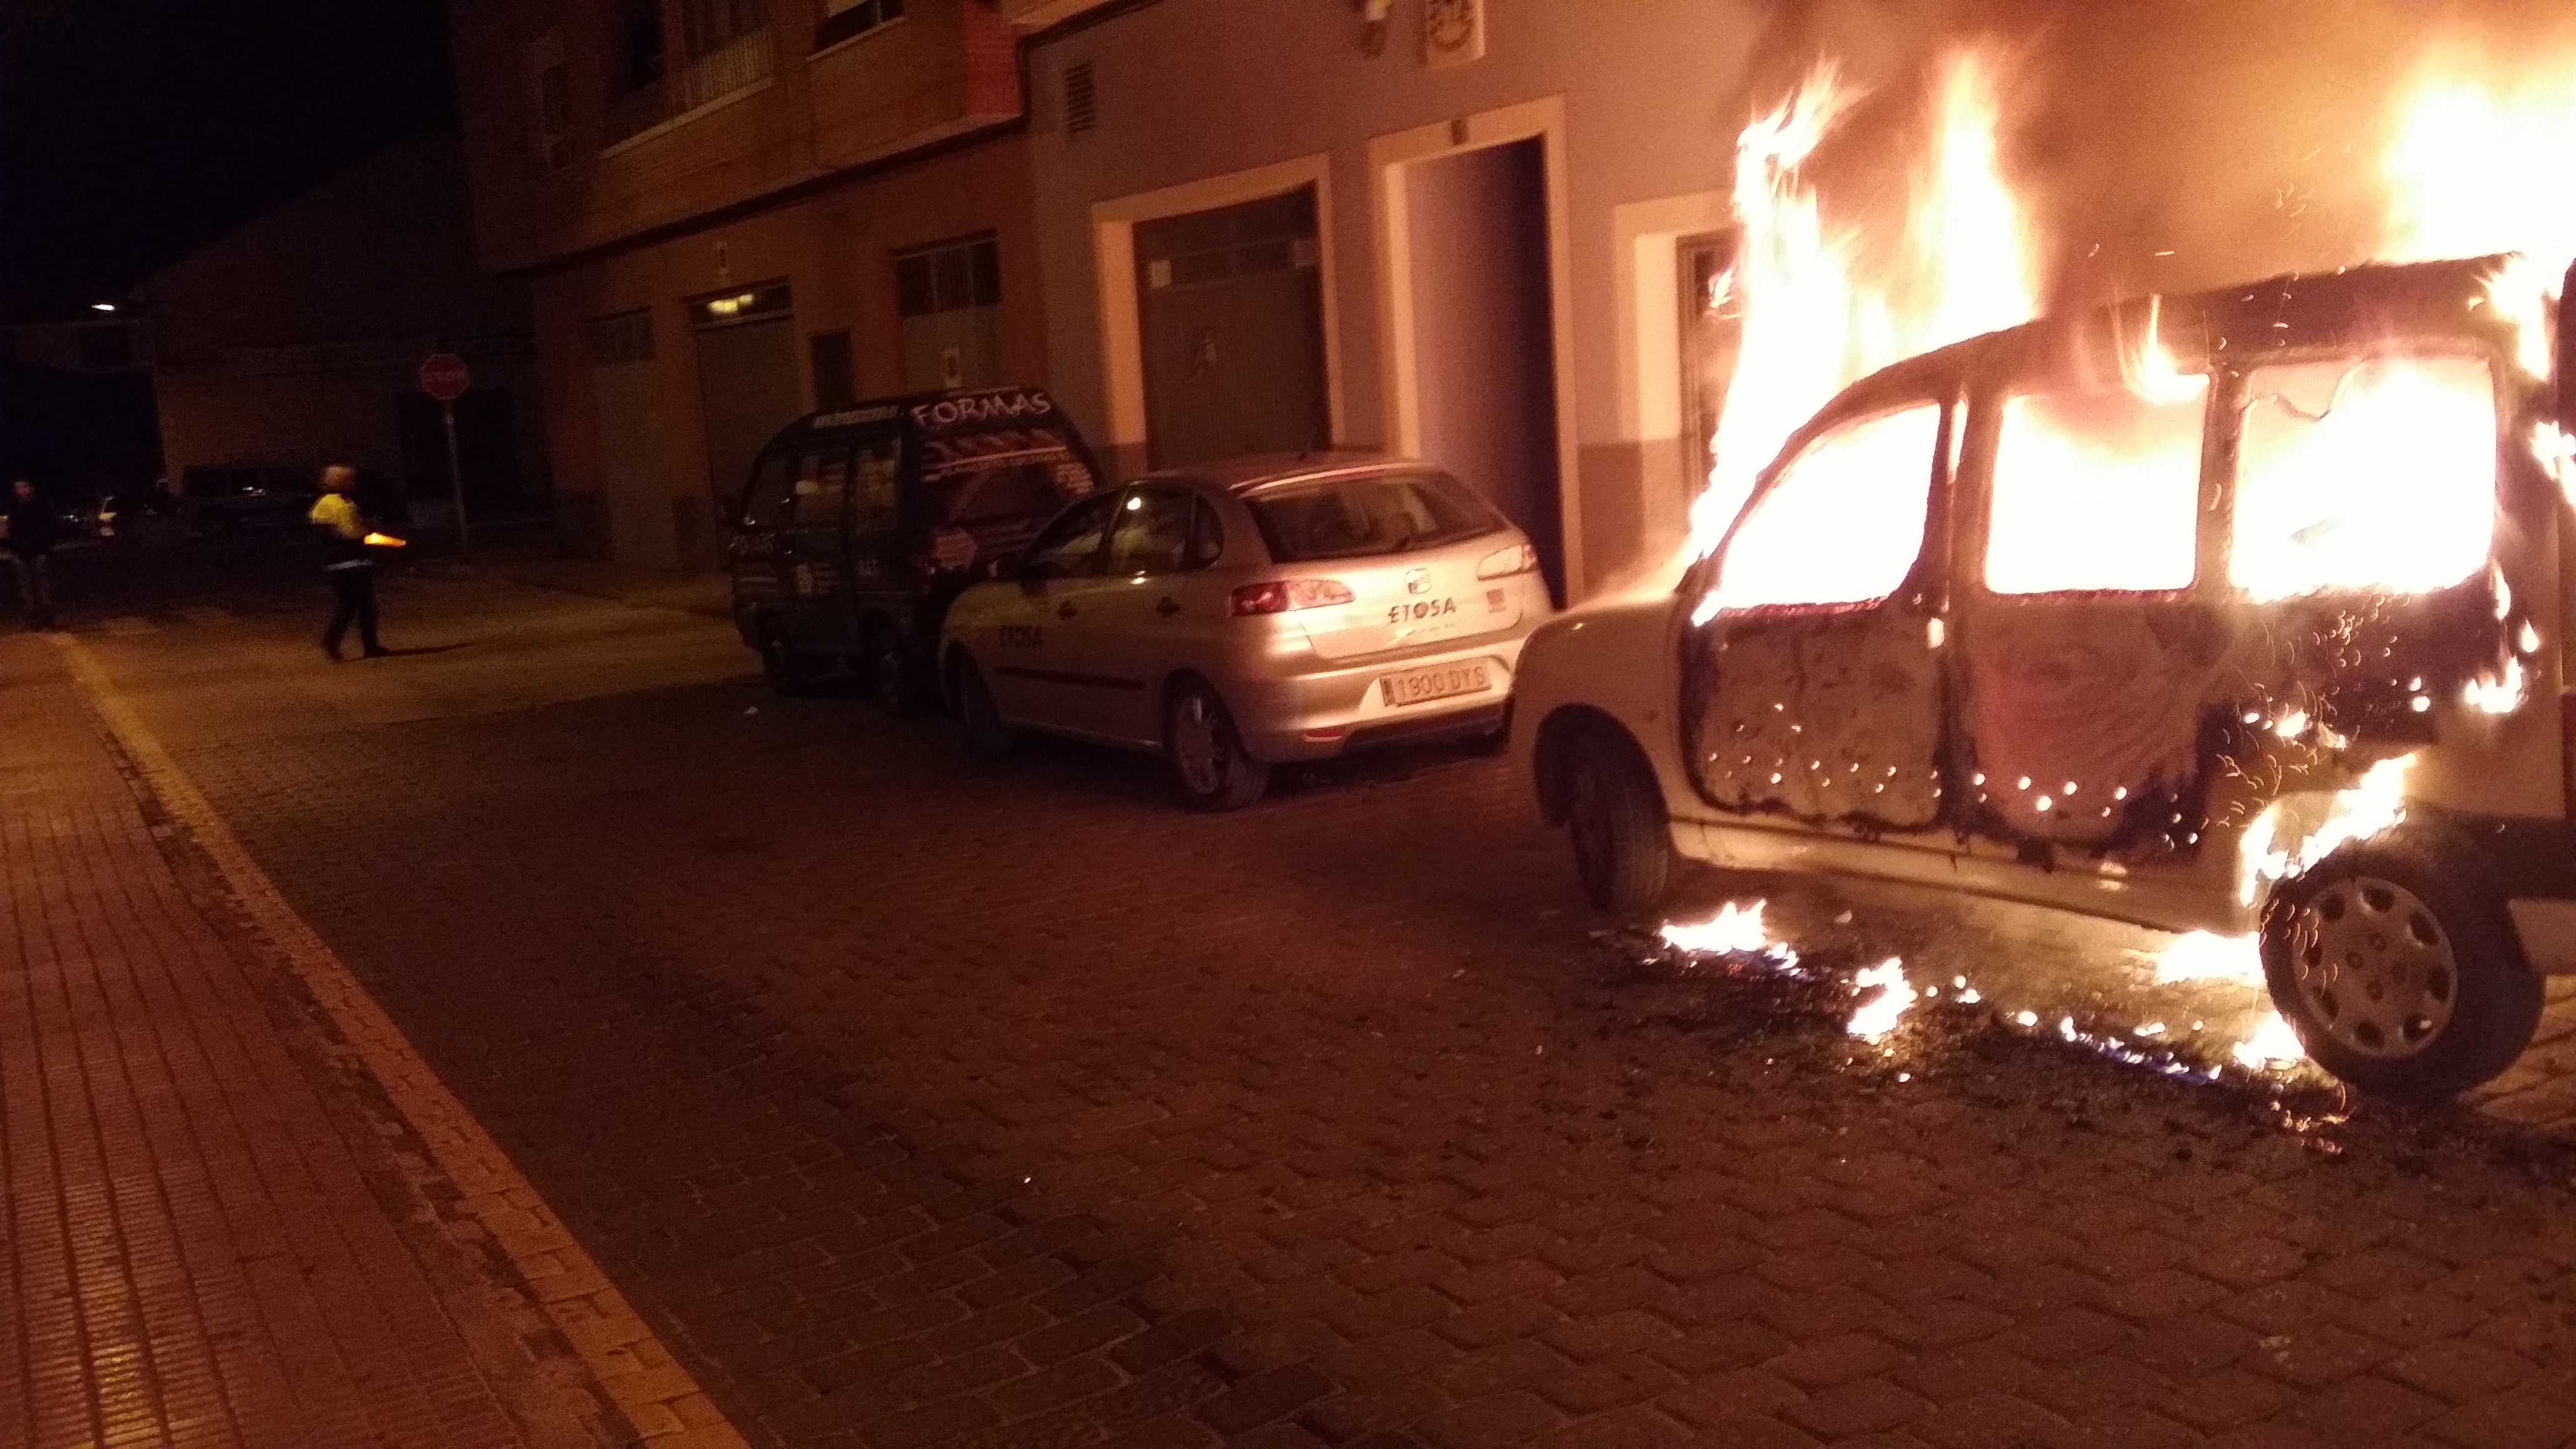 2014-12-14 incendio coches2